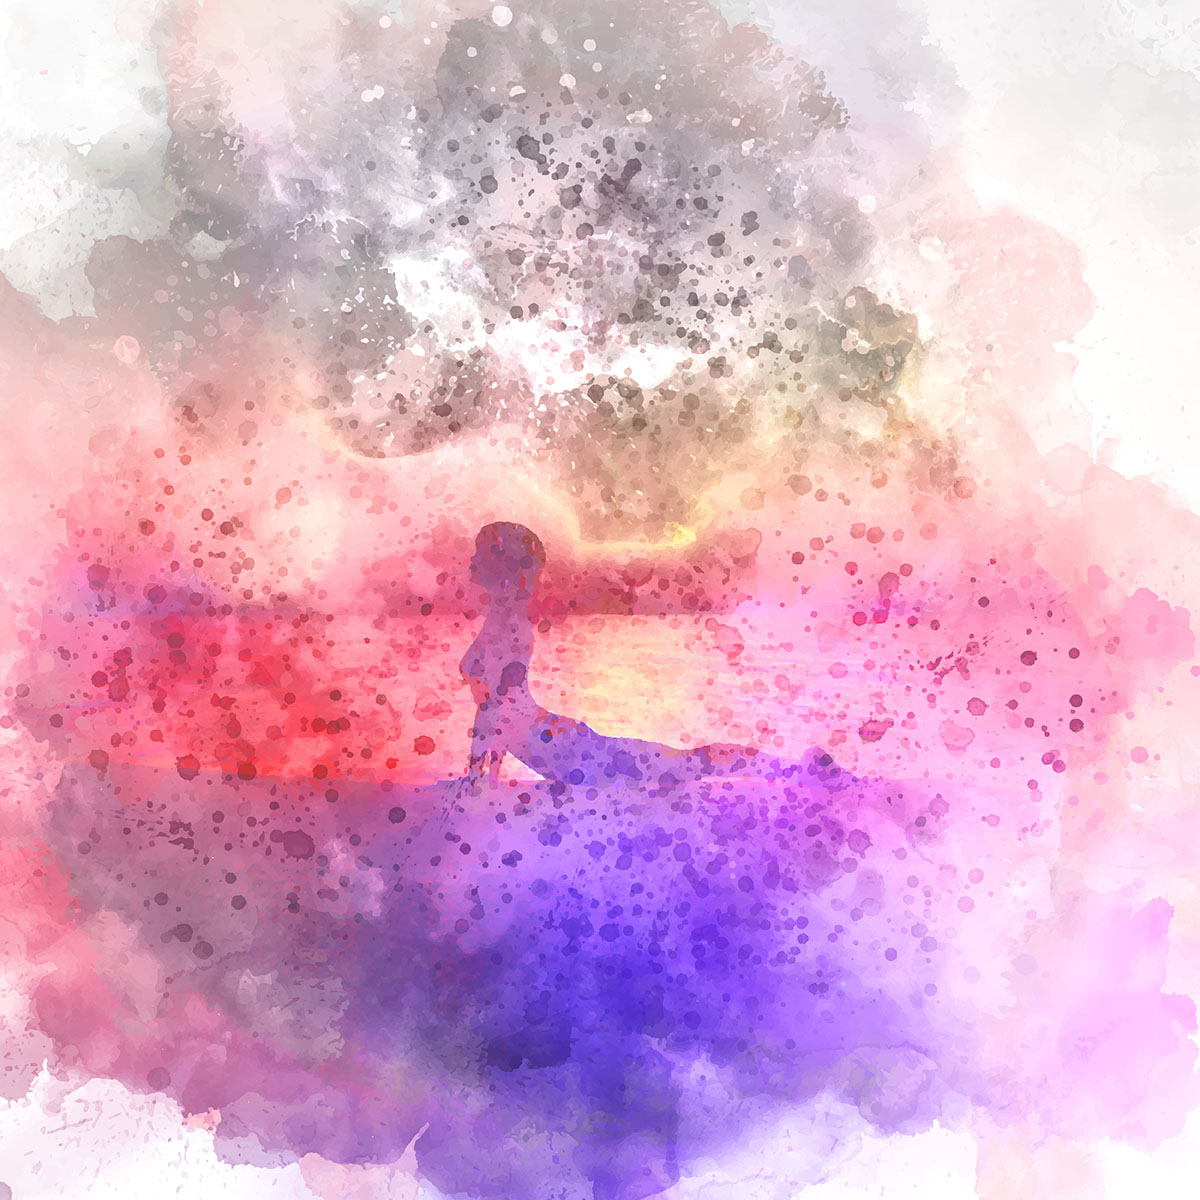 Female in yoga pose watercolour background - Download Free ...